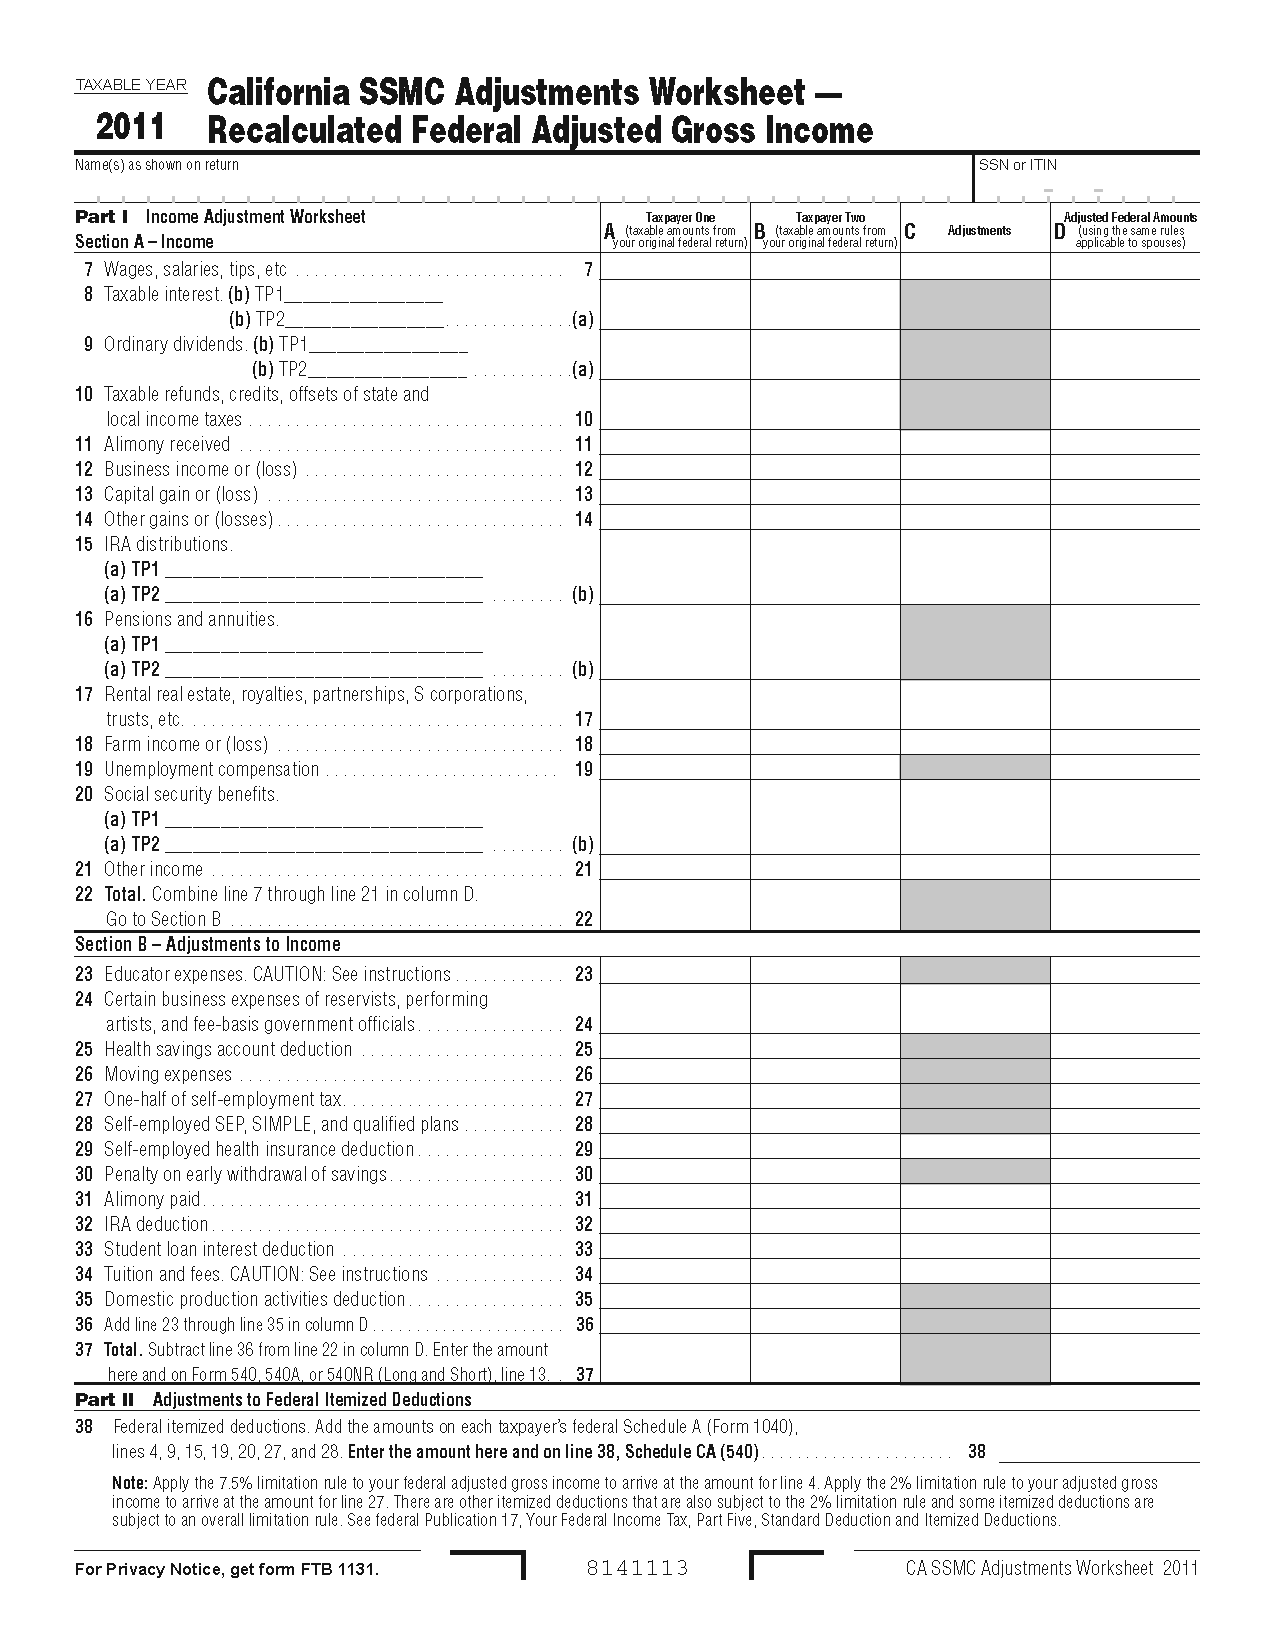 Form W-4-Personal Allowances Worksheet